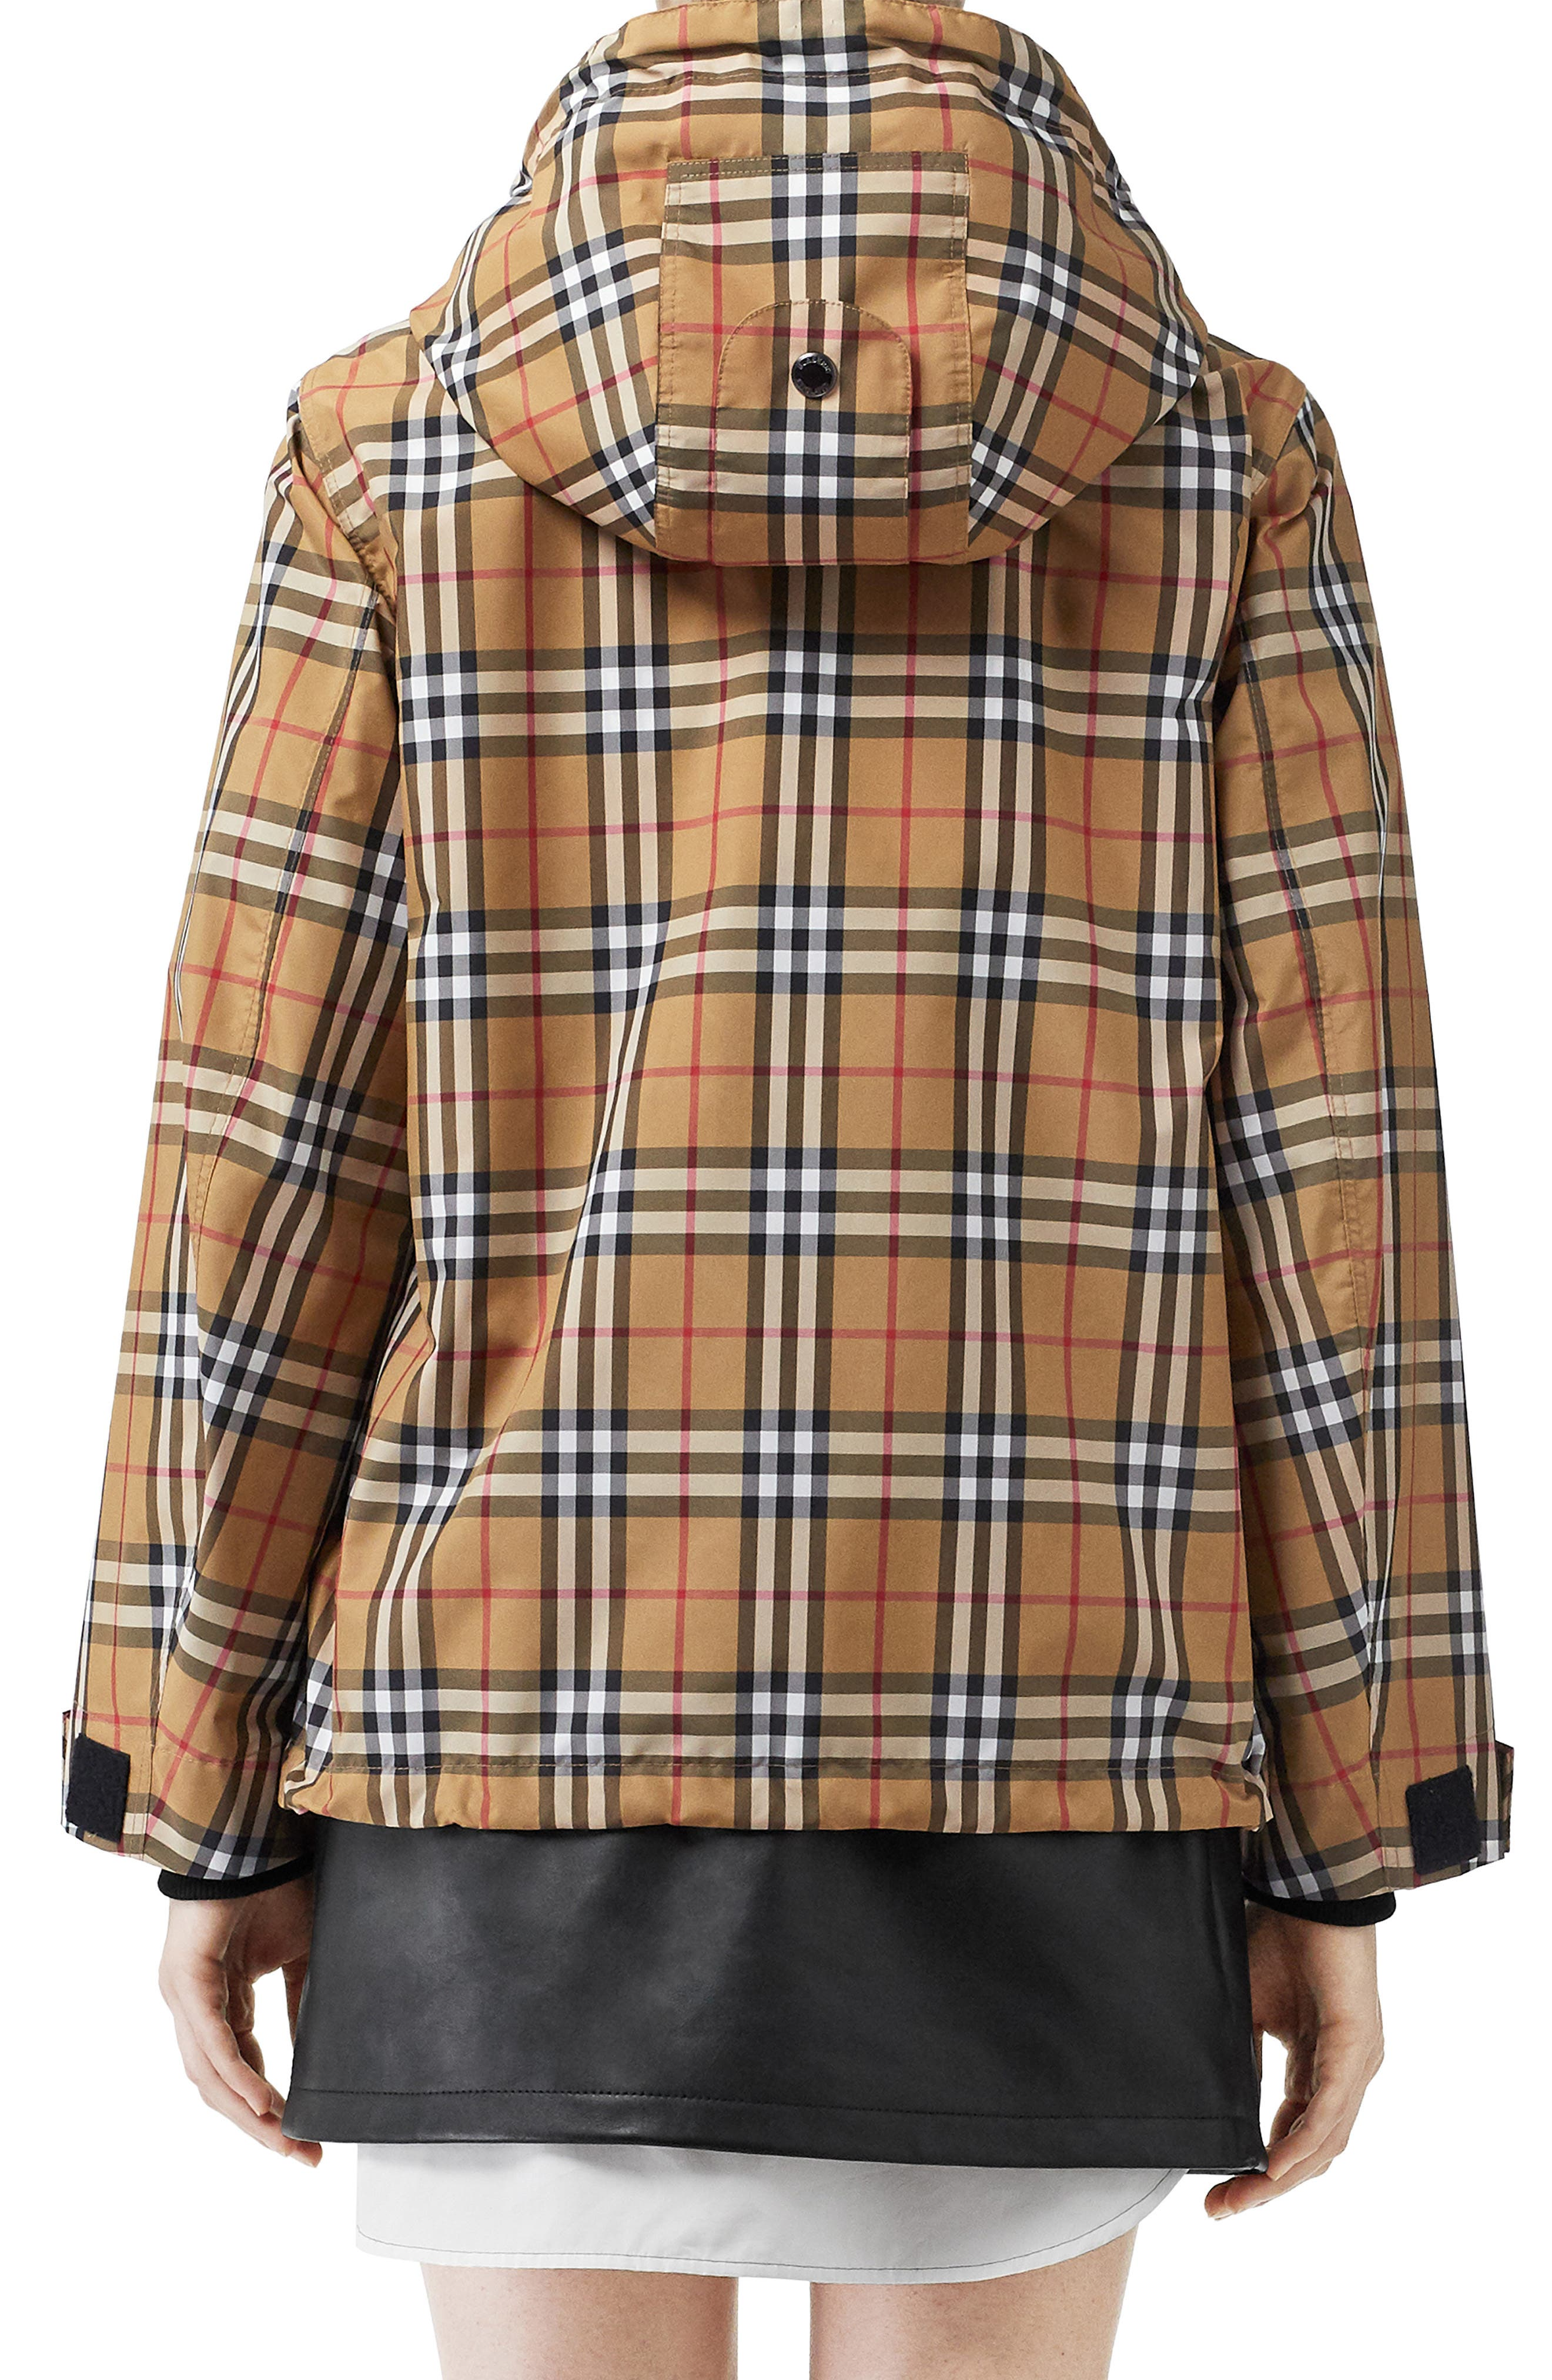 BURBERRY, Winchester Vintage Check Hooded Rain Jacket, Alternate thumbnail 2, color, ANTIQUE YEL IP CHK